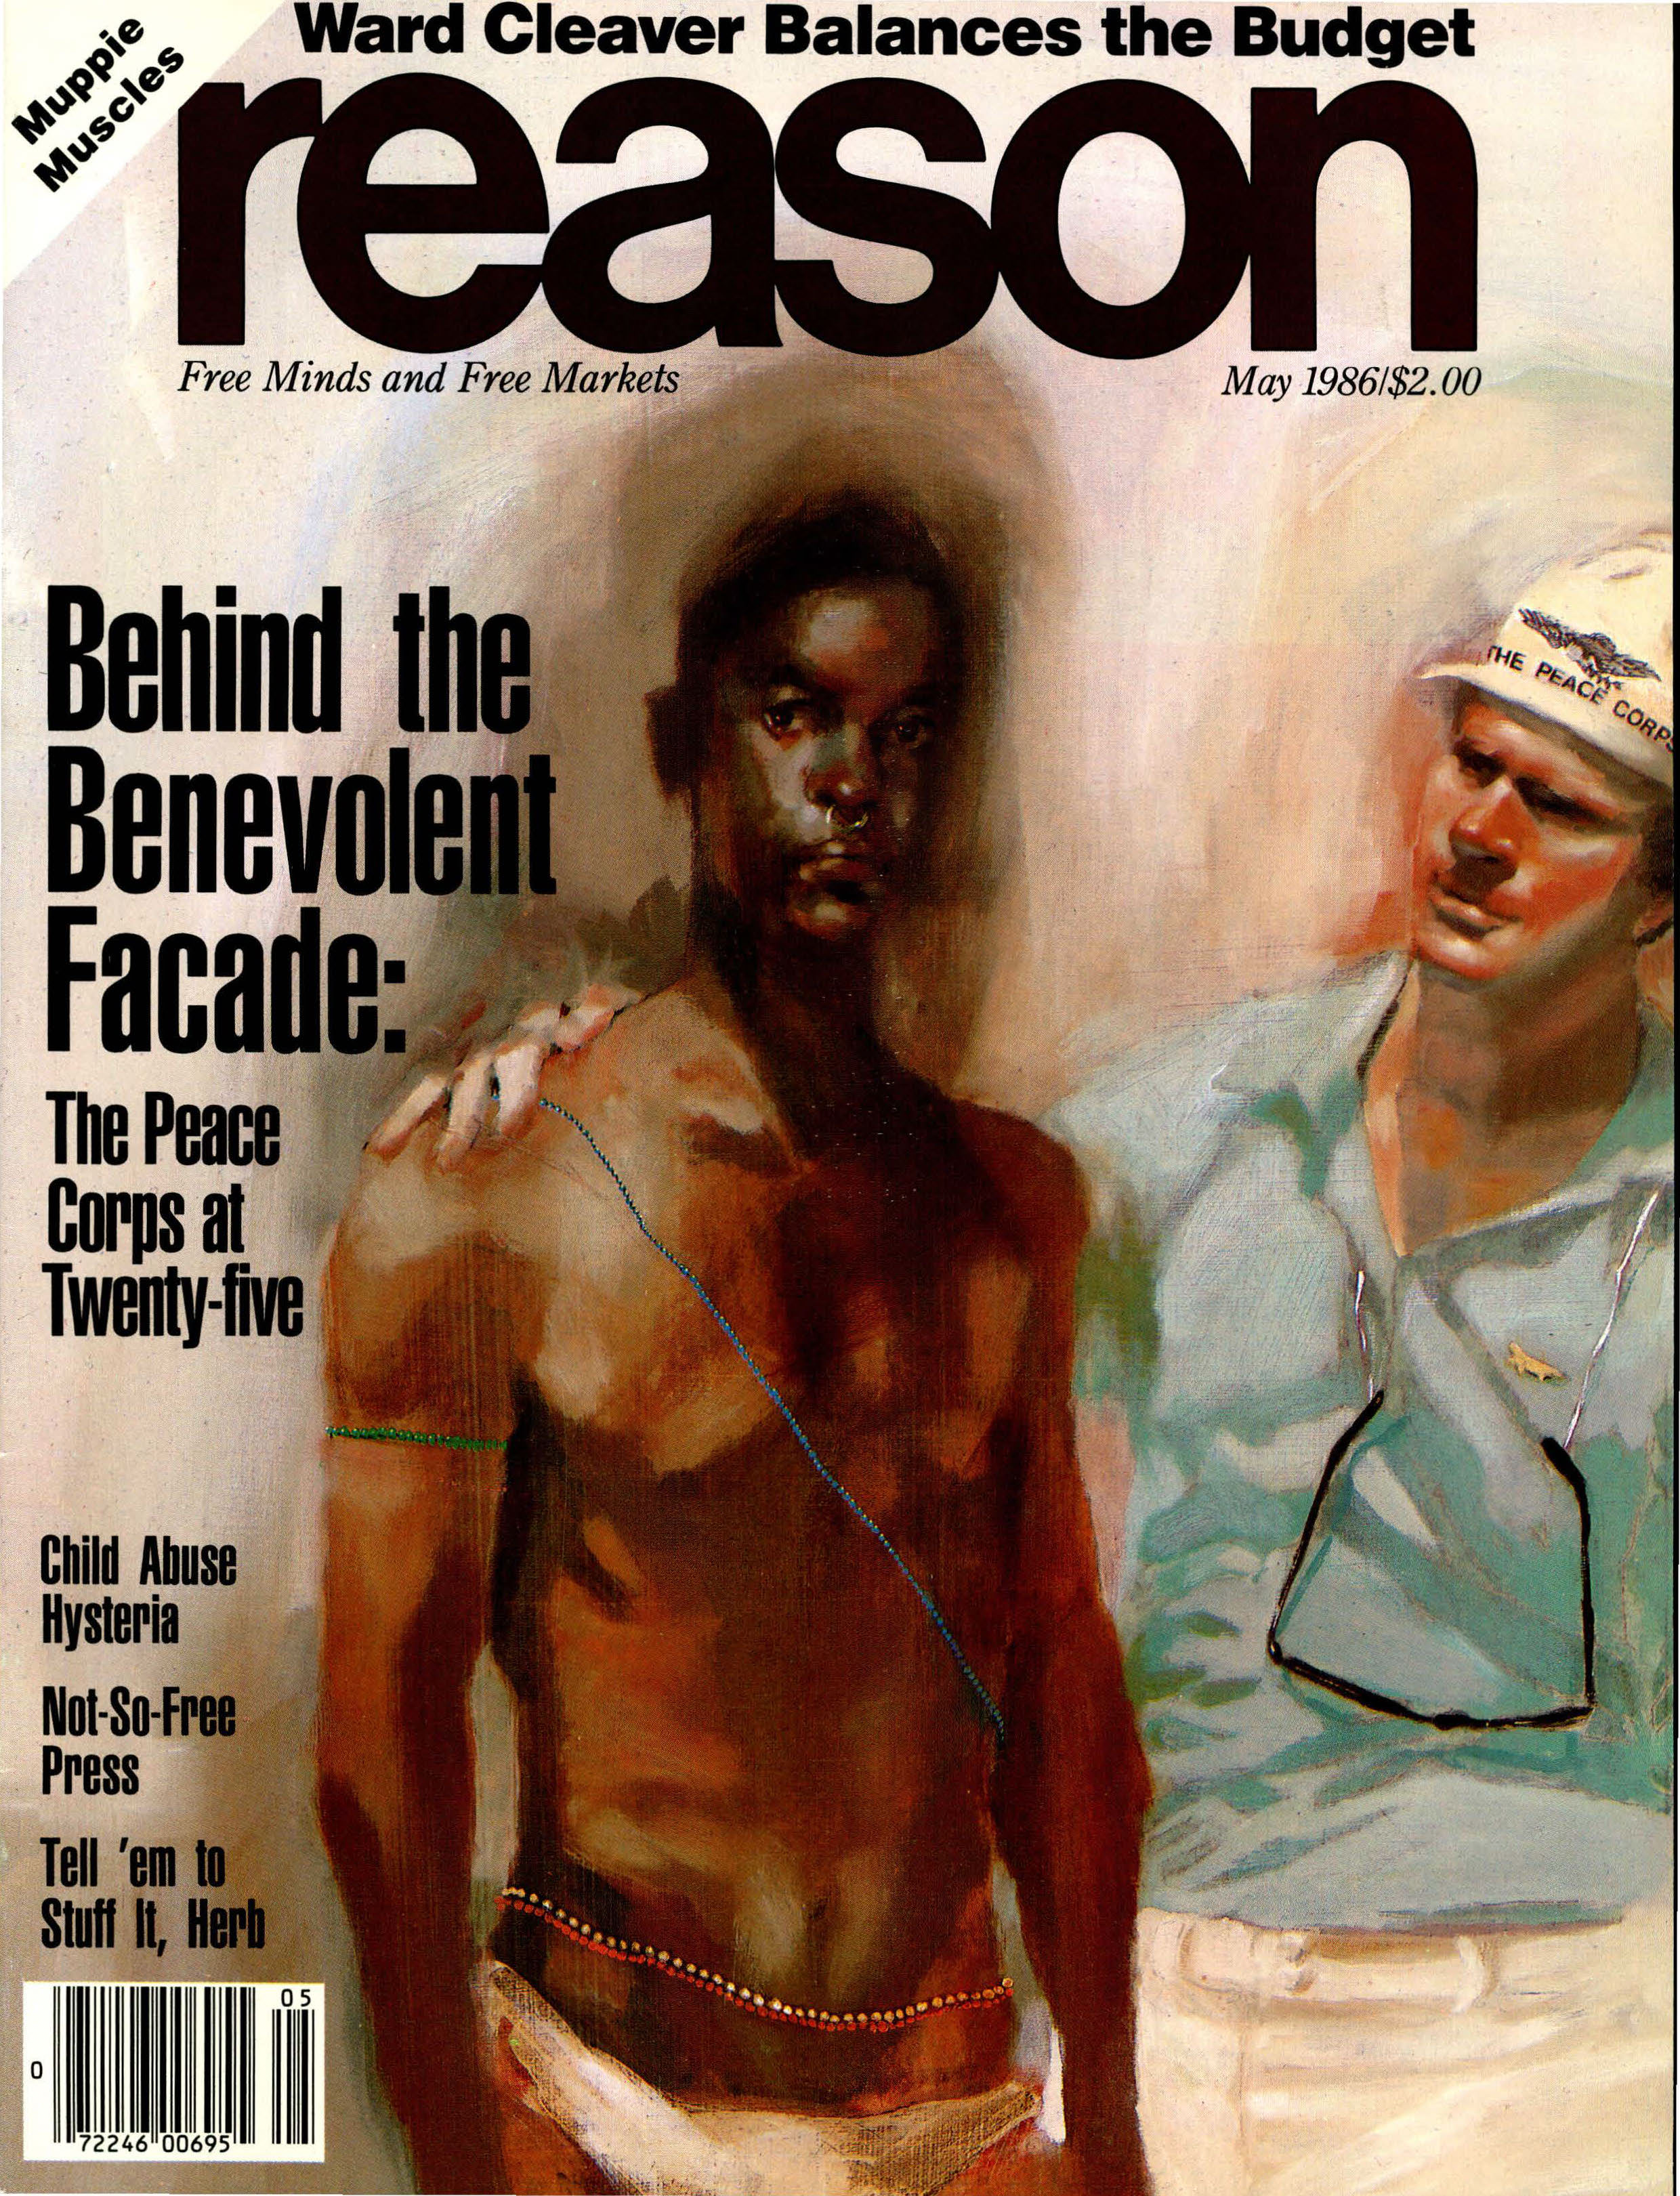 Reason Magazine, May 1986 cover image